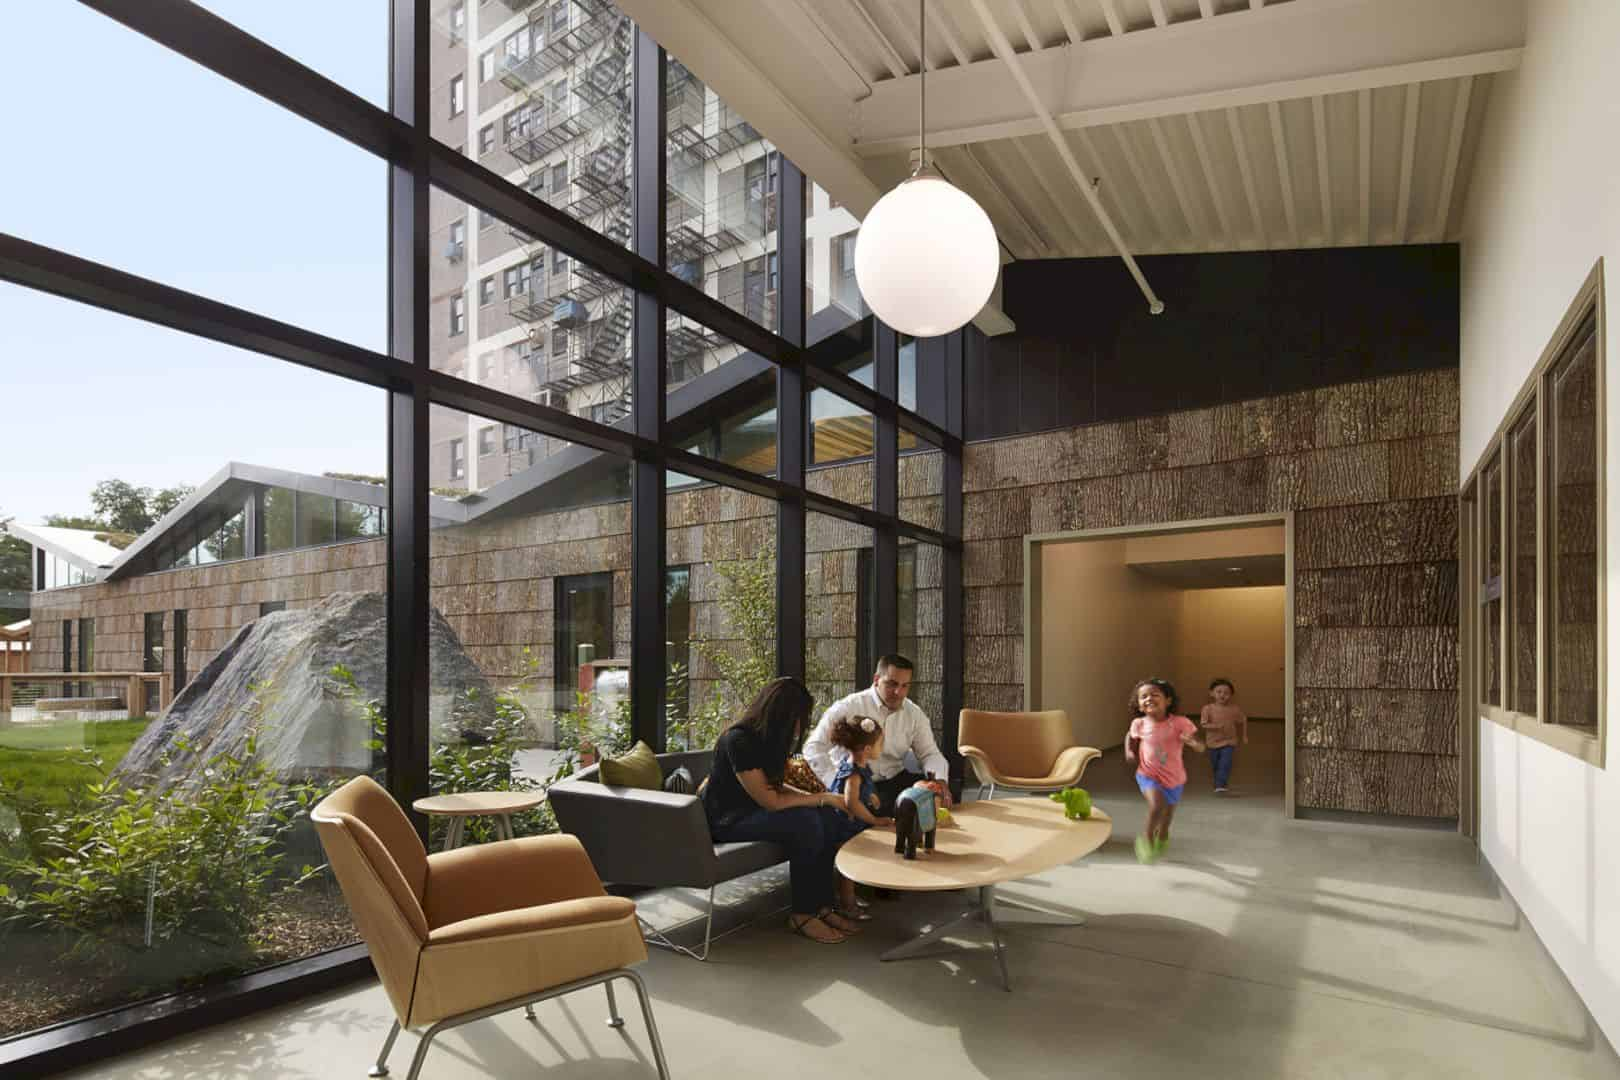 UChicago Child Development Center – Stony Island: A Simple Building Integrated with Natural Environment